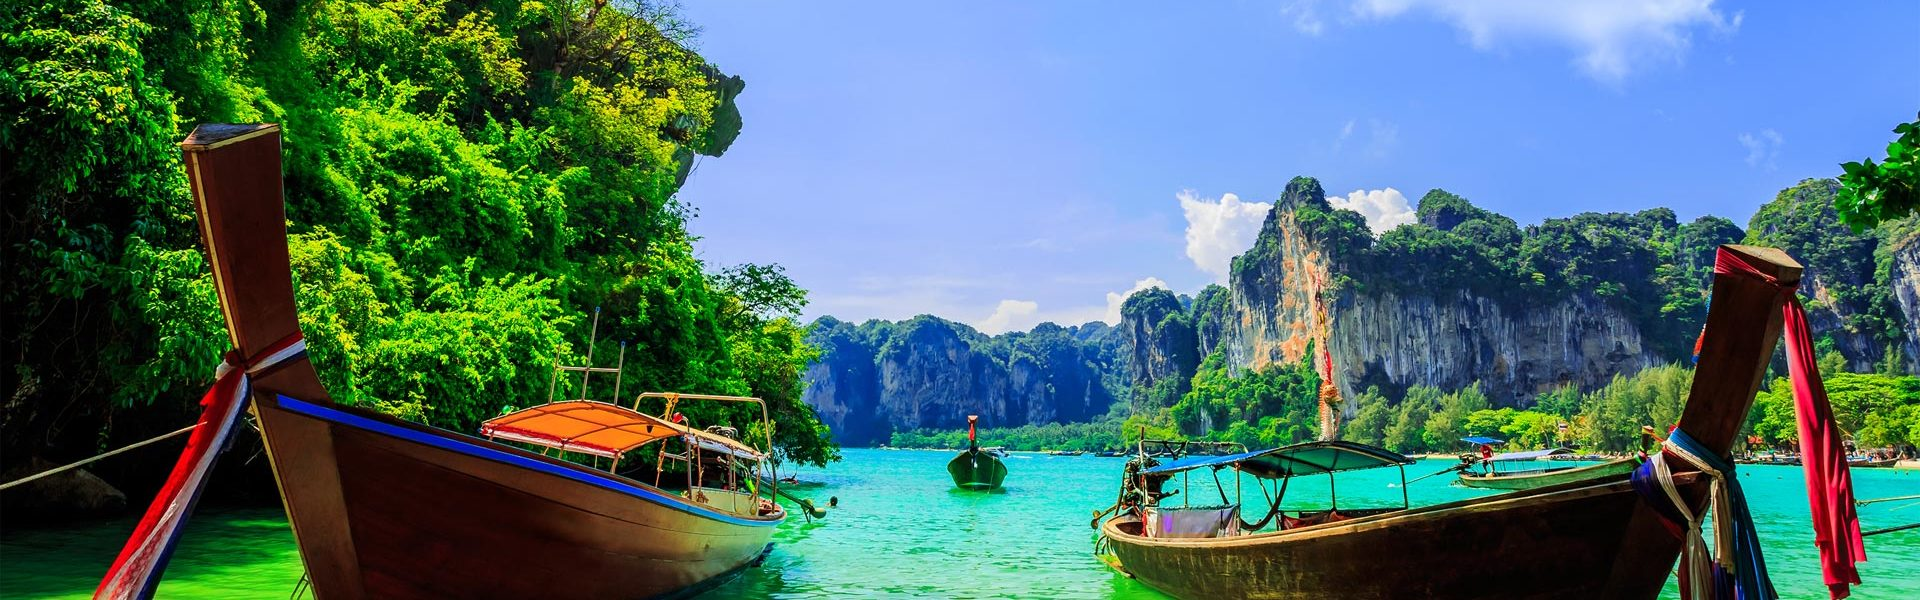 Vietnam - Holidays & Tours - Tailored Journeys